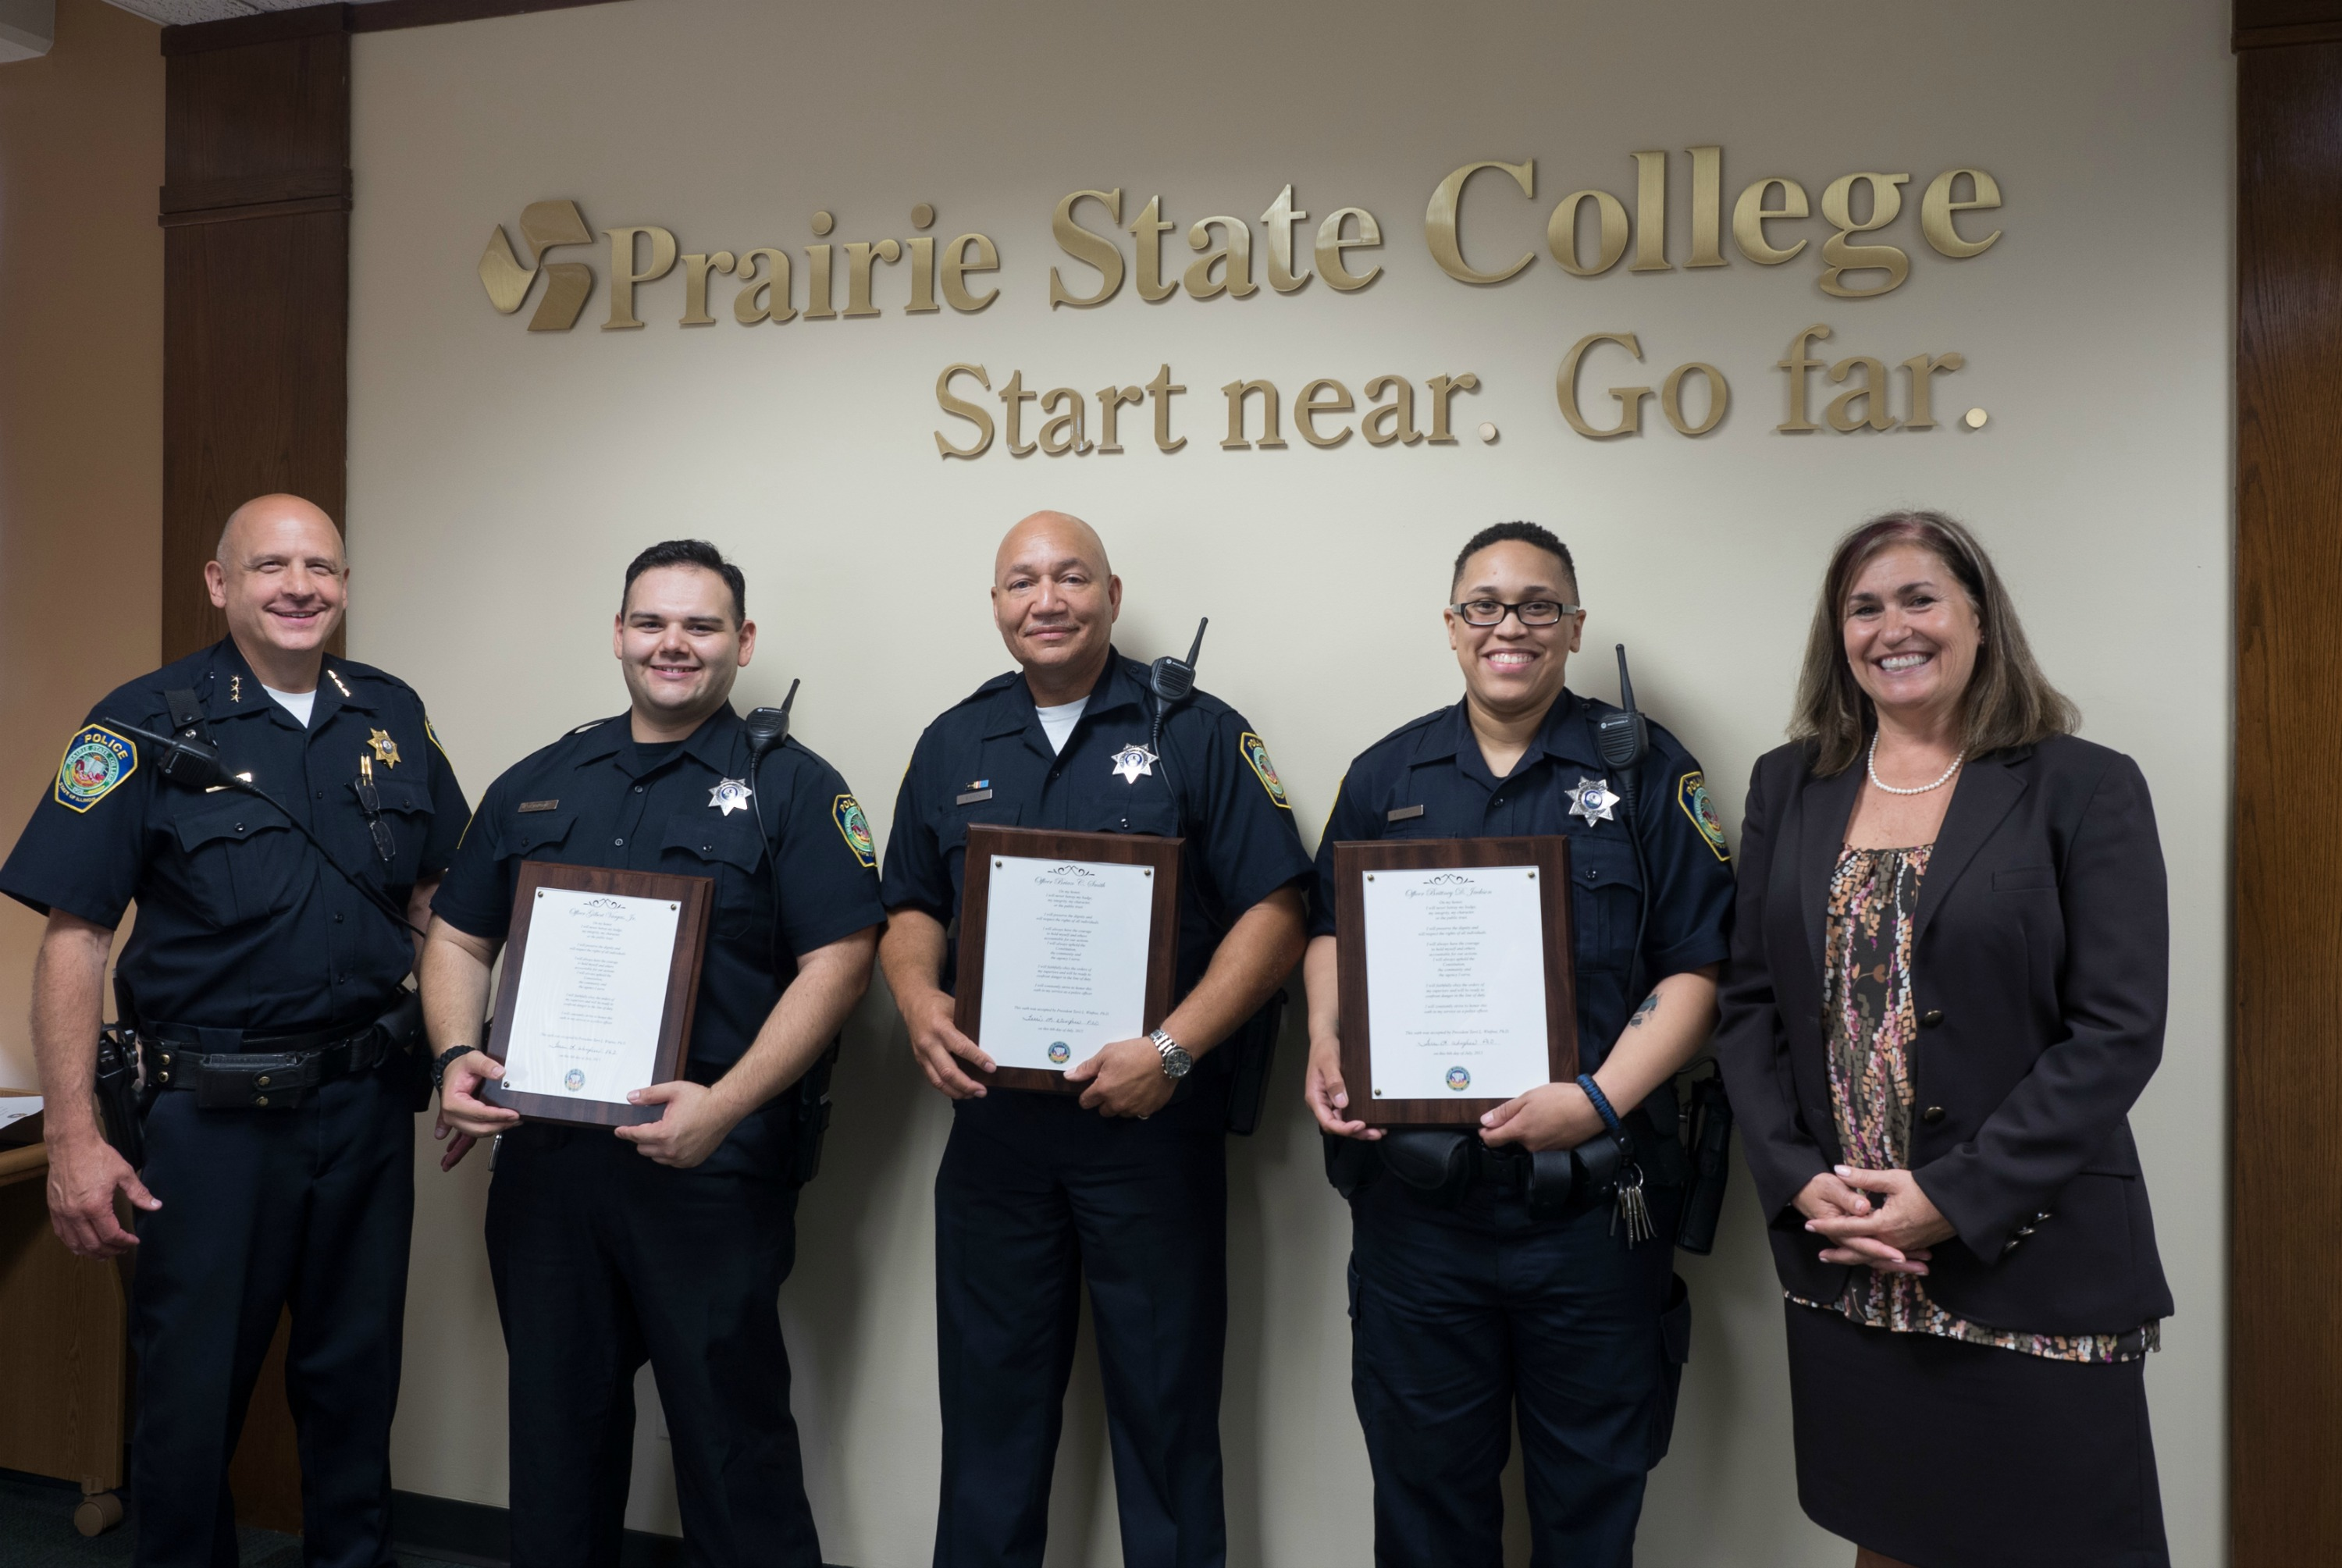 Prairie State College (PSC) Police Chief John P. Murphy, Sr. (left), and President Dr. Terri L. Winfree (right) congratulate newly sworn in officers to the PSC Police Department (from second from left) Gilbert Vargas, Jr., Brian C. Smith, and Brittney D. Jackson.